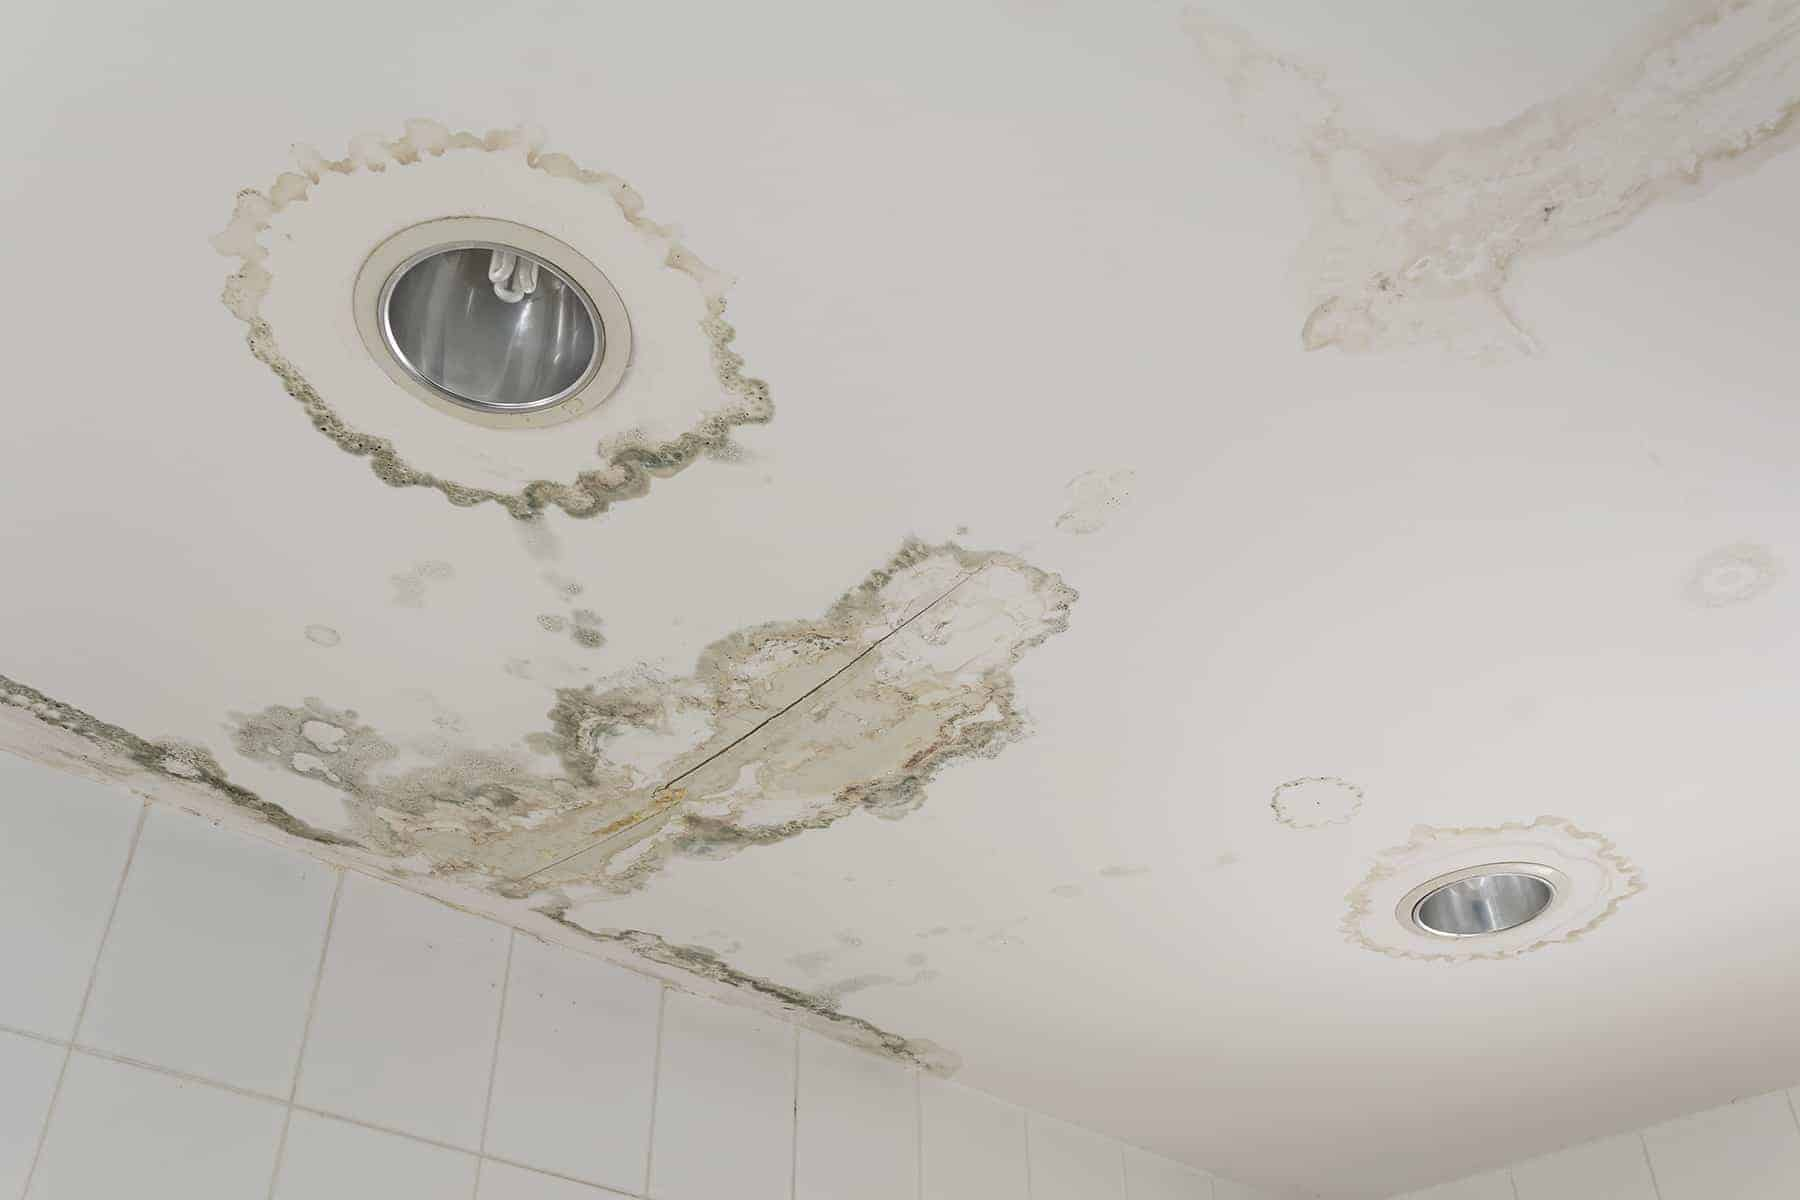 water leaks from the ceiling